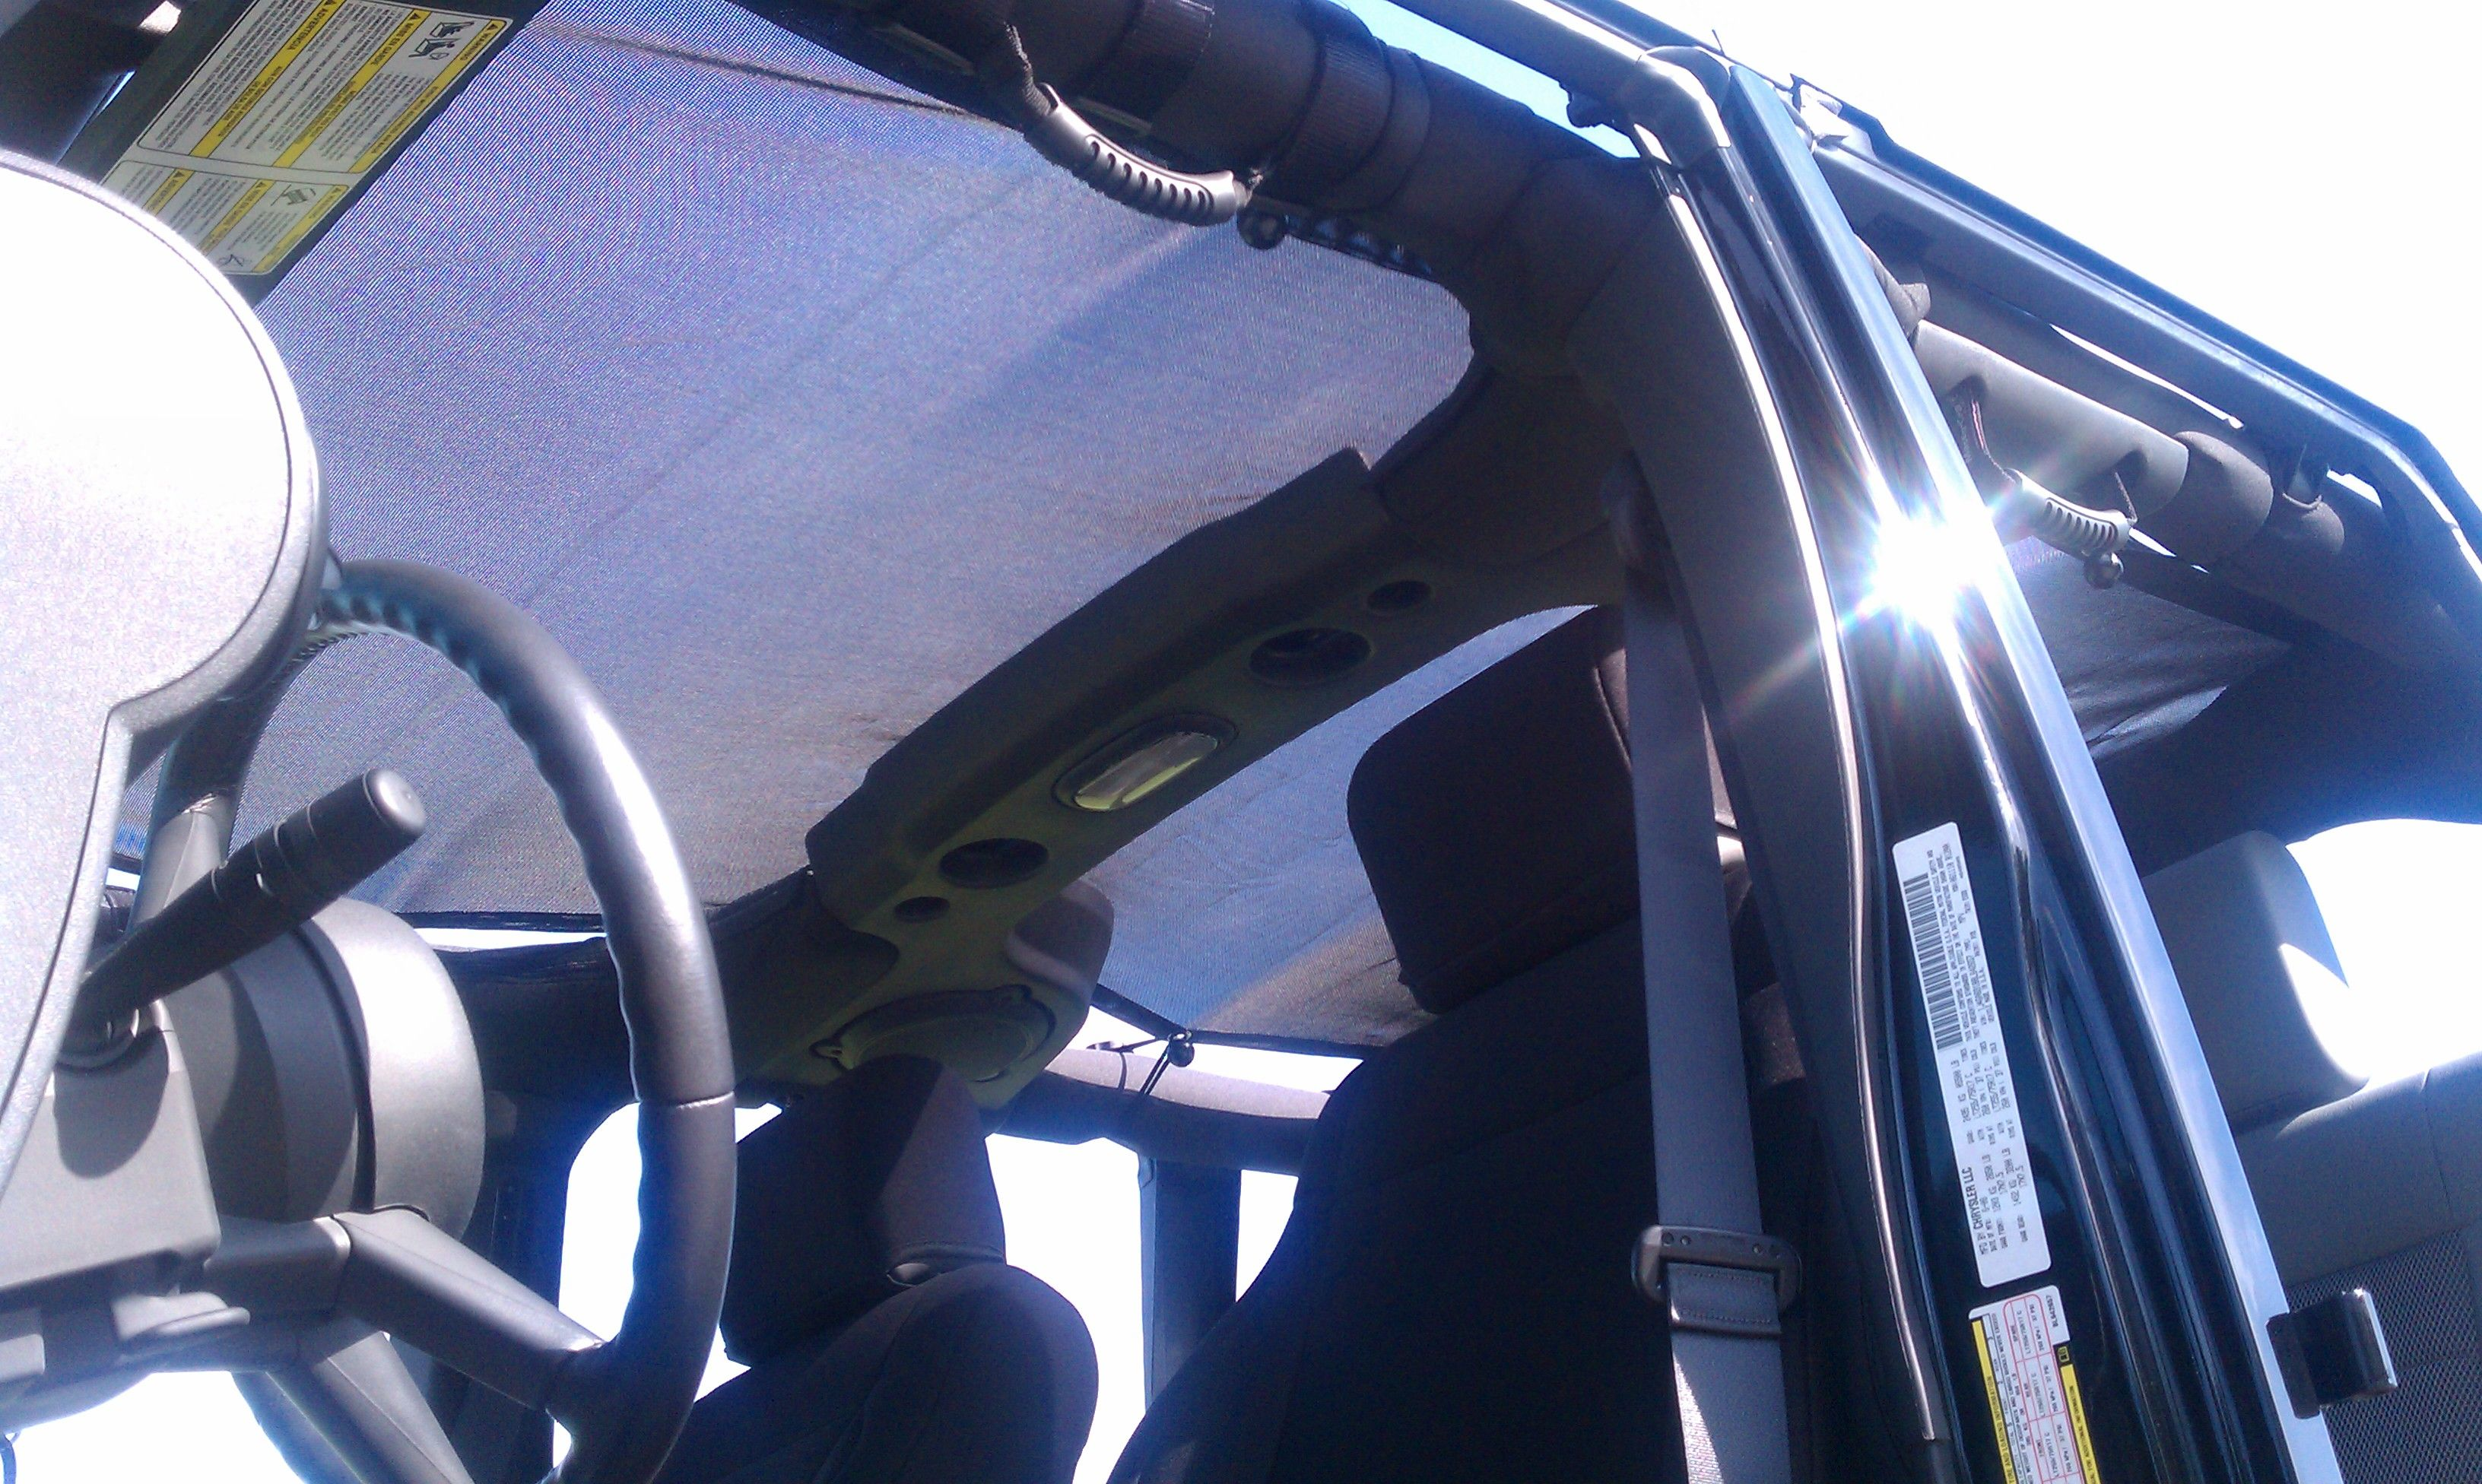 Spider Webshade For Your Jeep Wrangler It Fits Under Your